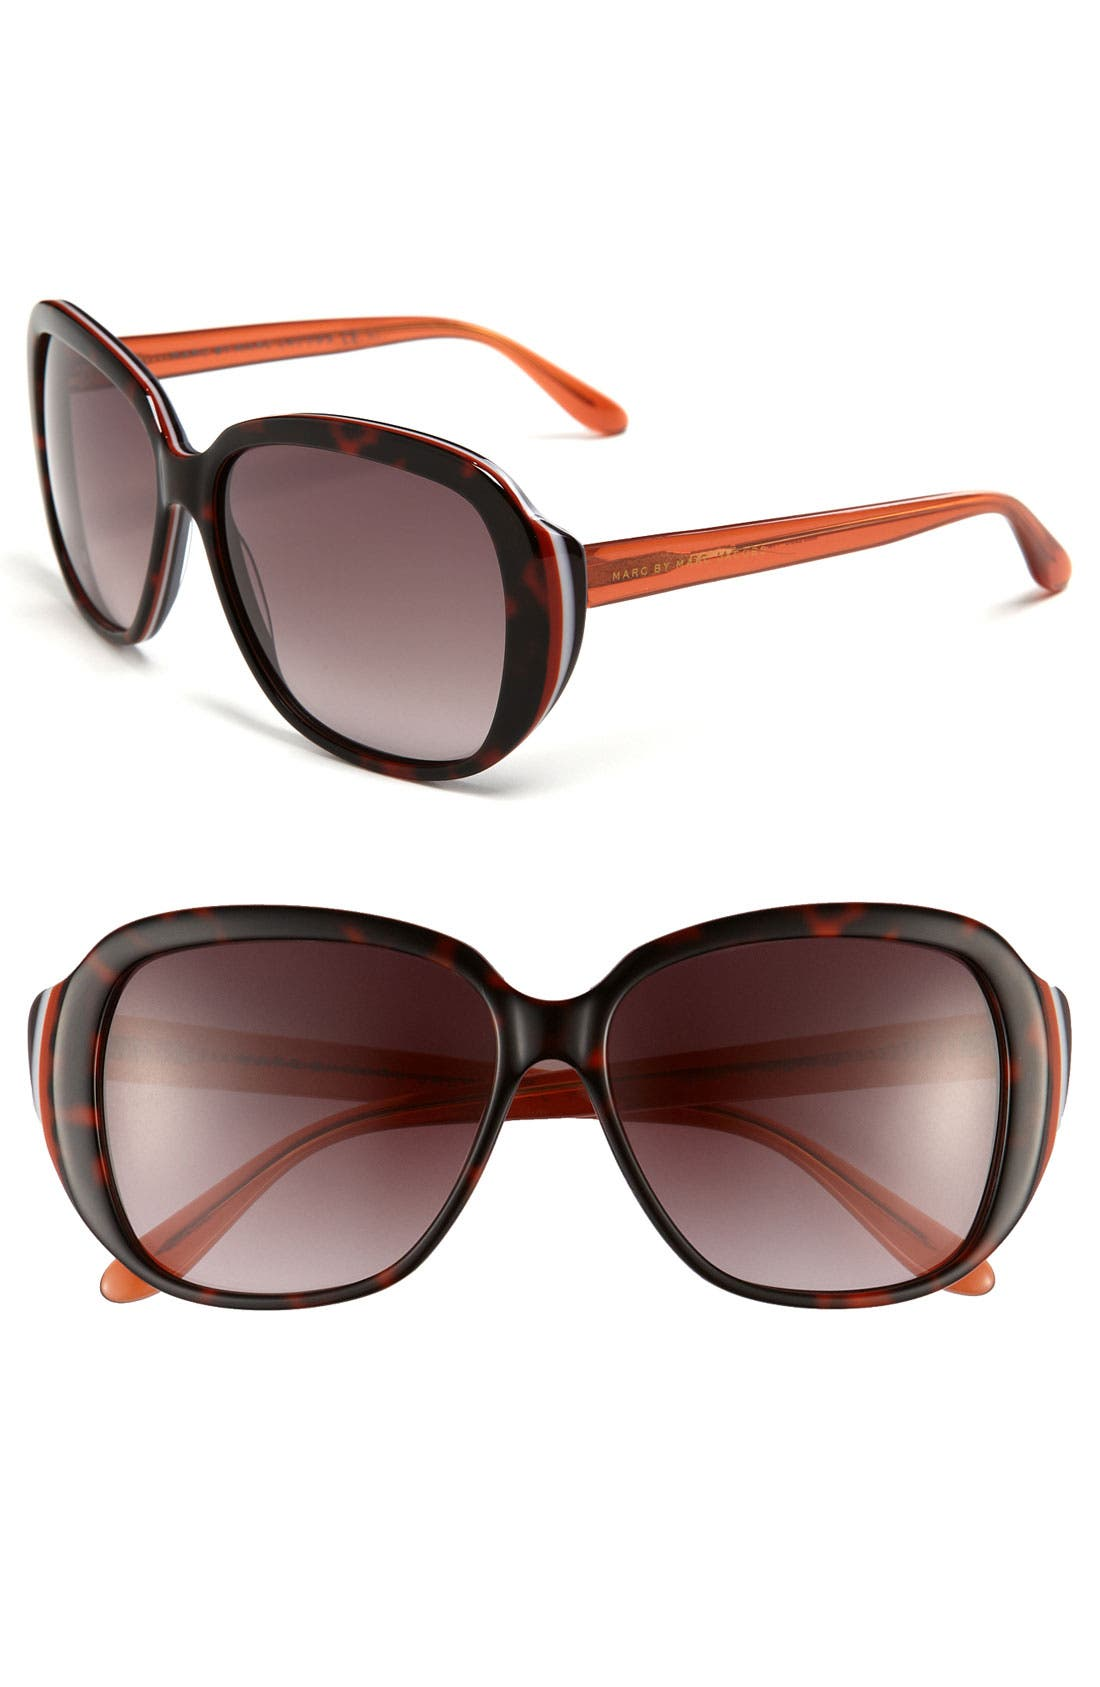 Main Image - MARC BY MARC JACOBS 'Classic' Sunglasses